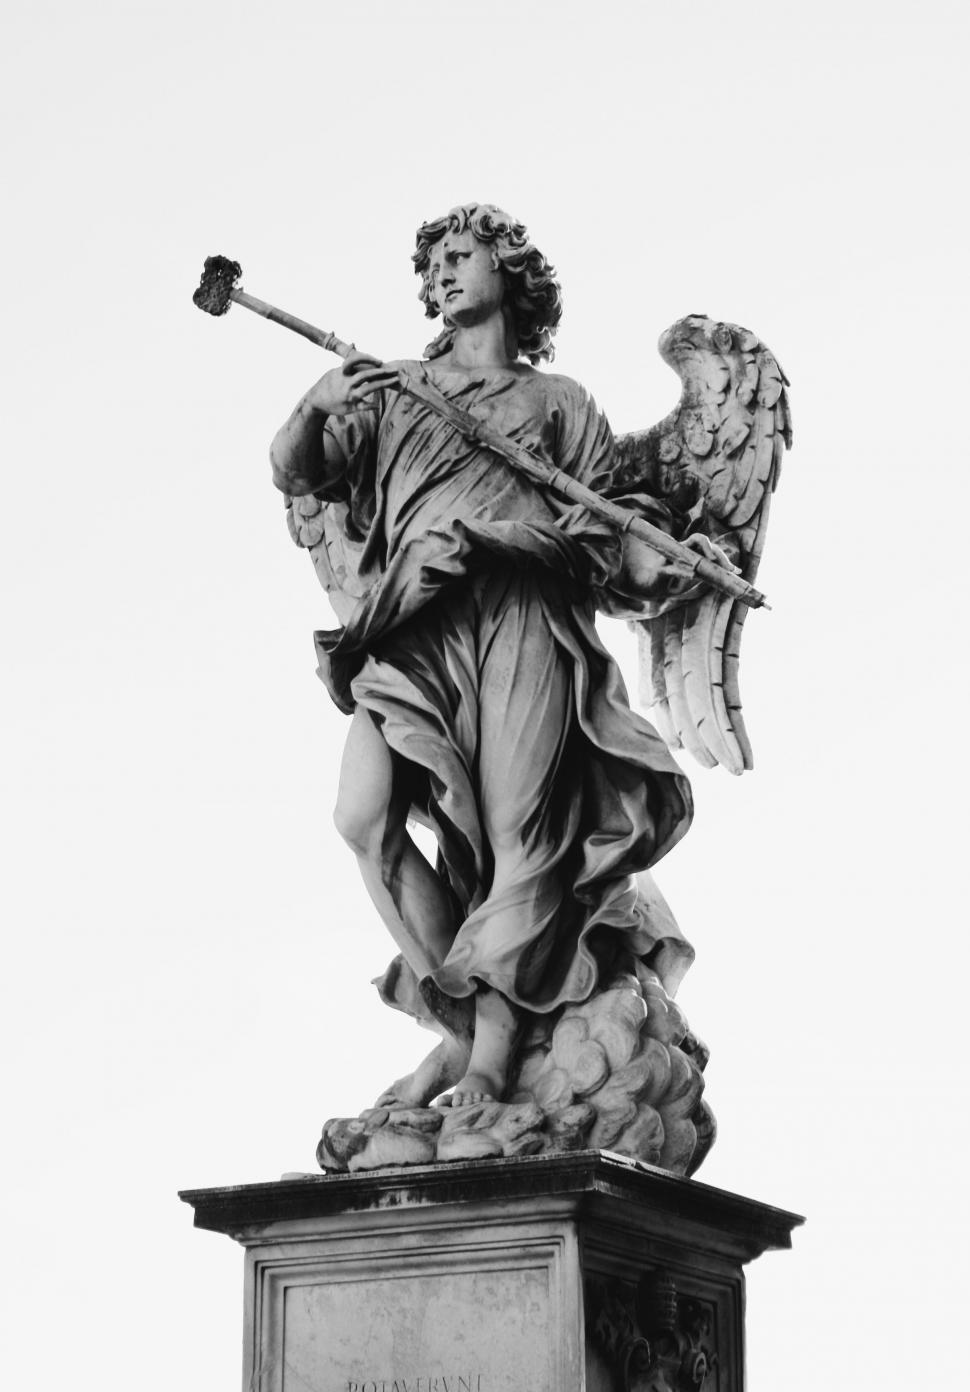 Download Free Stock Photo of Angel with hammer